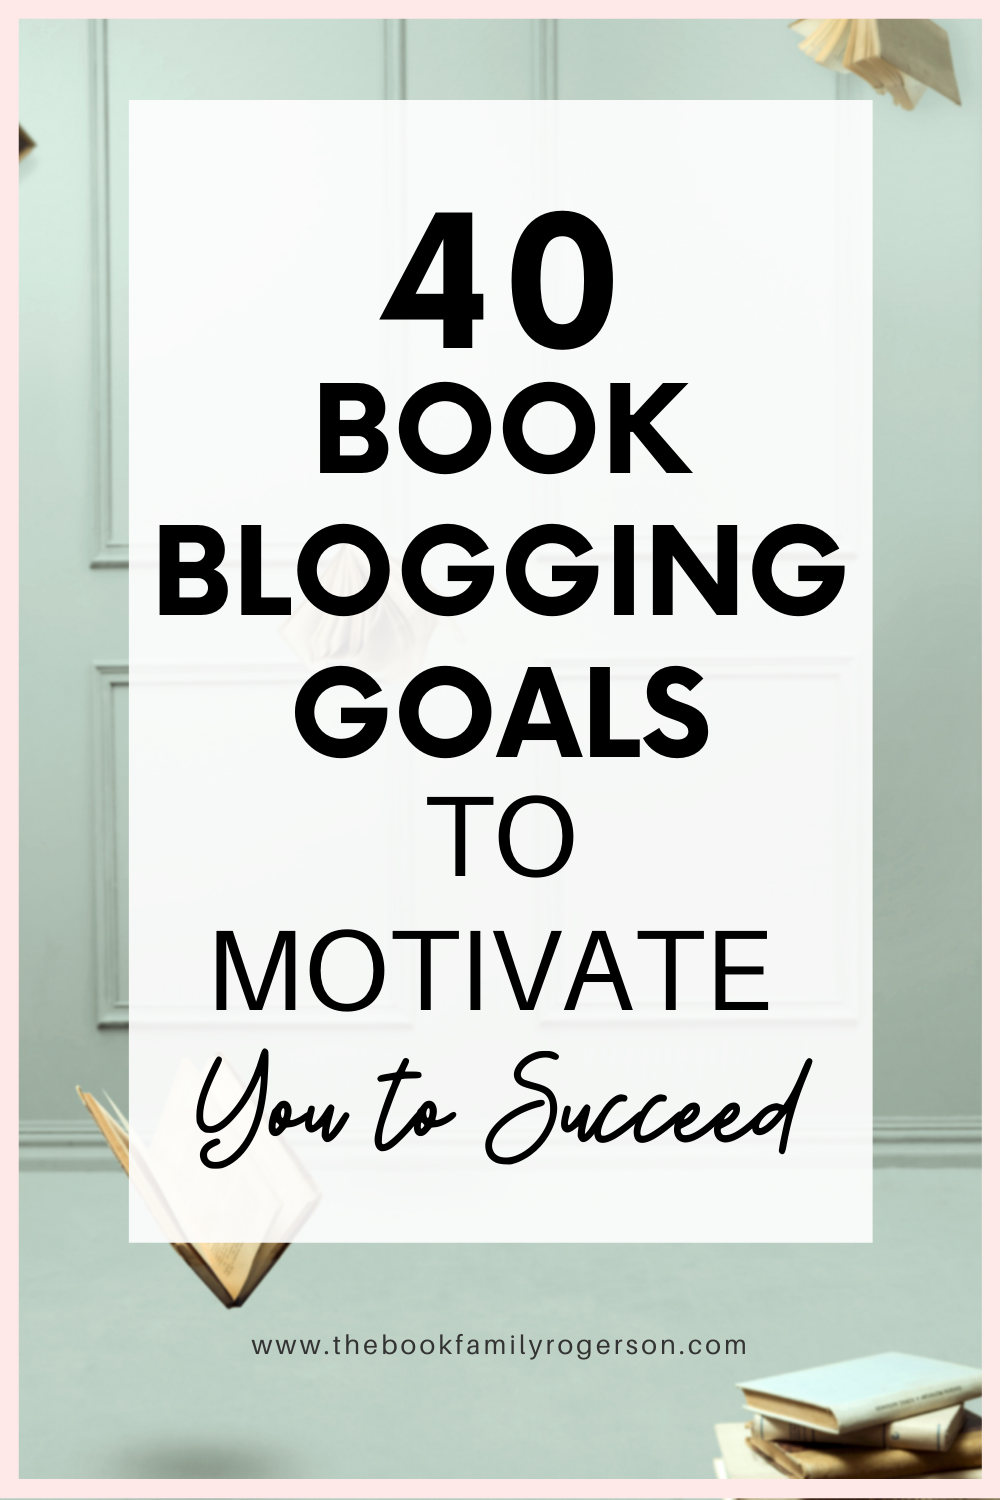 40 Book Blogging Goals To Motivate You To Succeed